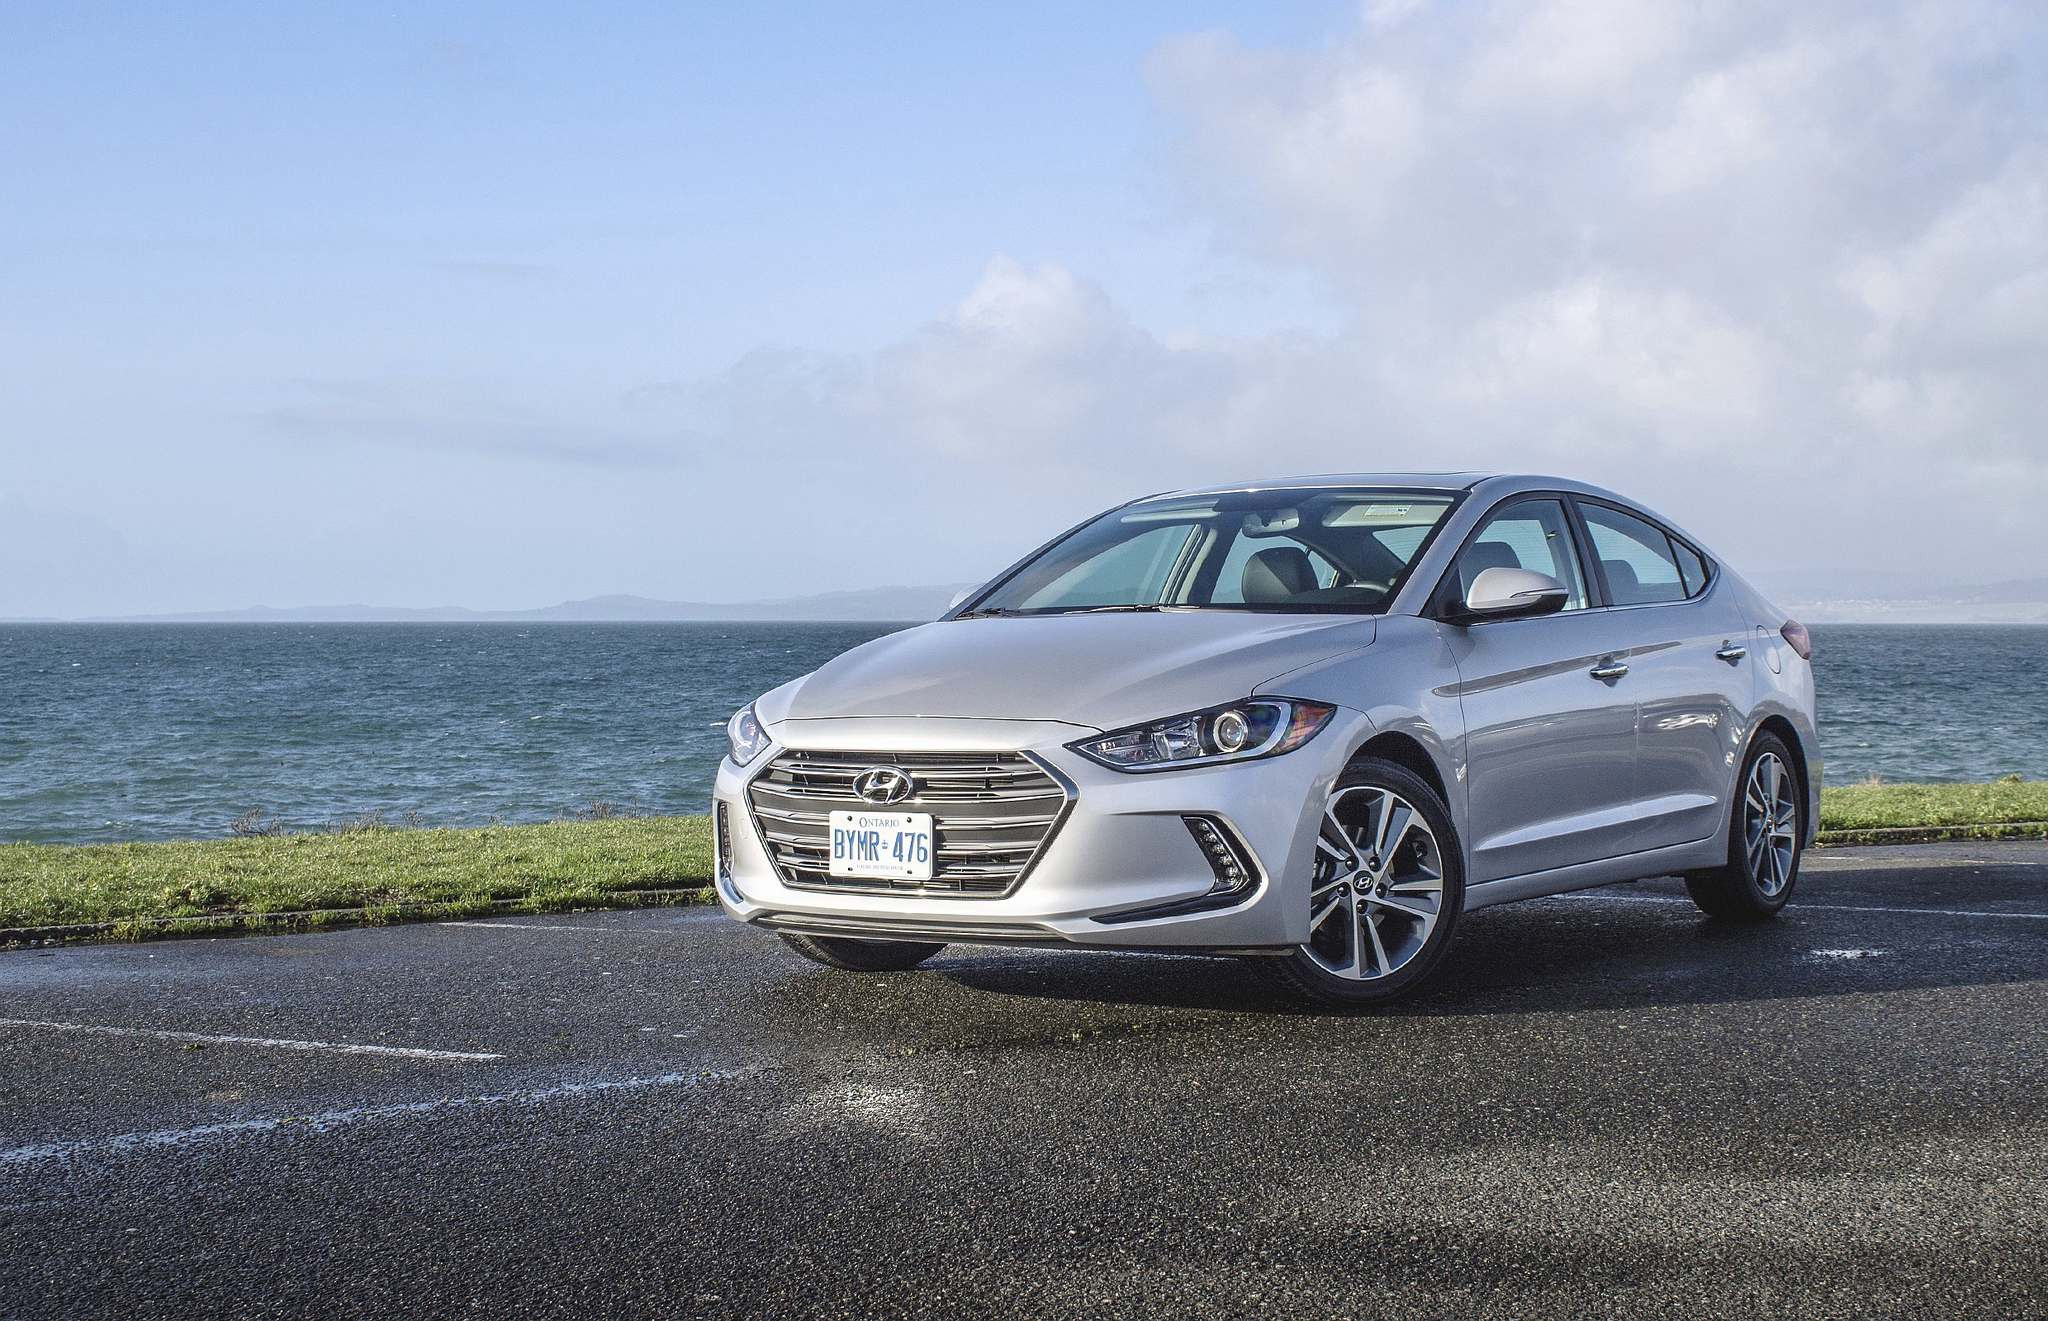 HYUNDAIThe 2017 Hyundai Elantra is a good value, offering sophisticated looks as well as a lot of space and features for the money.